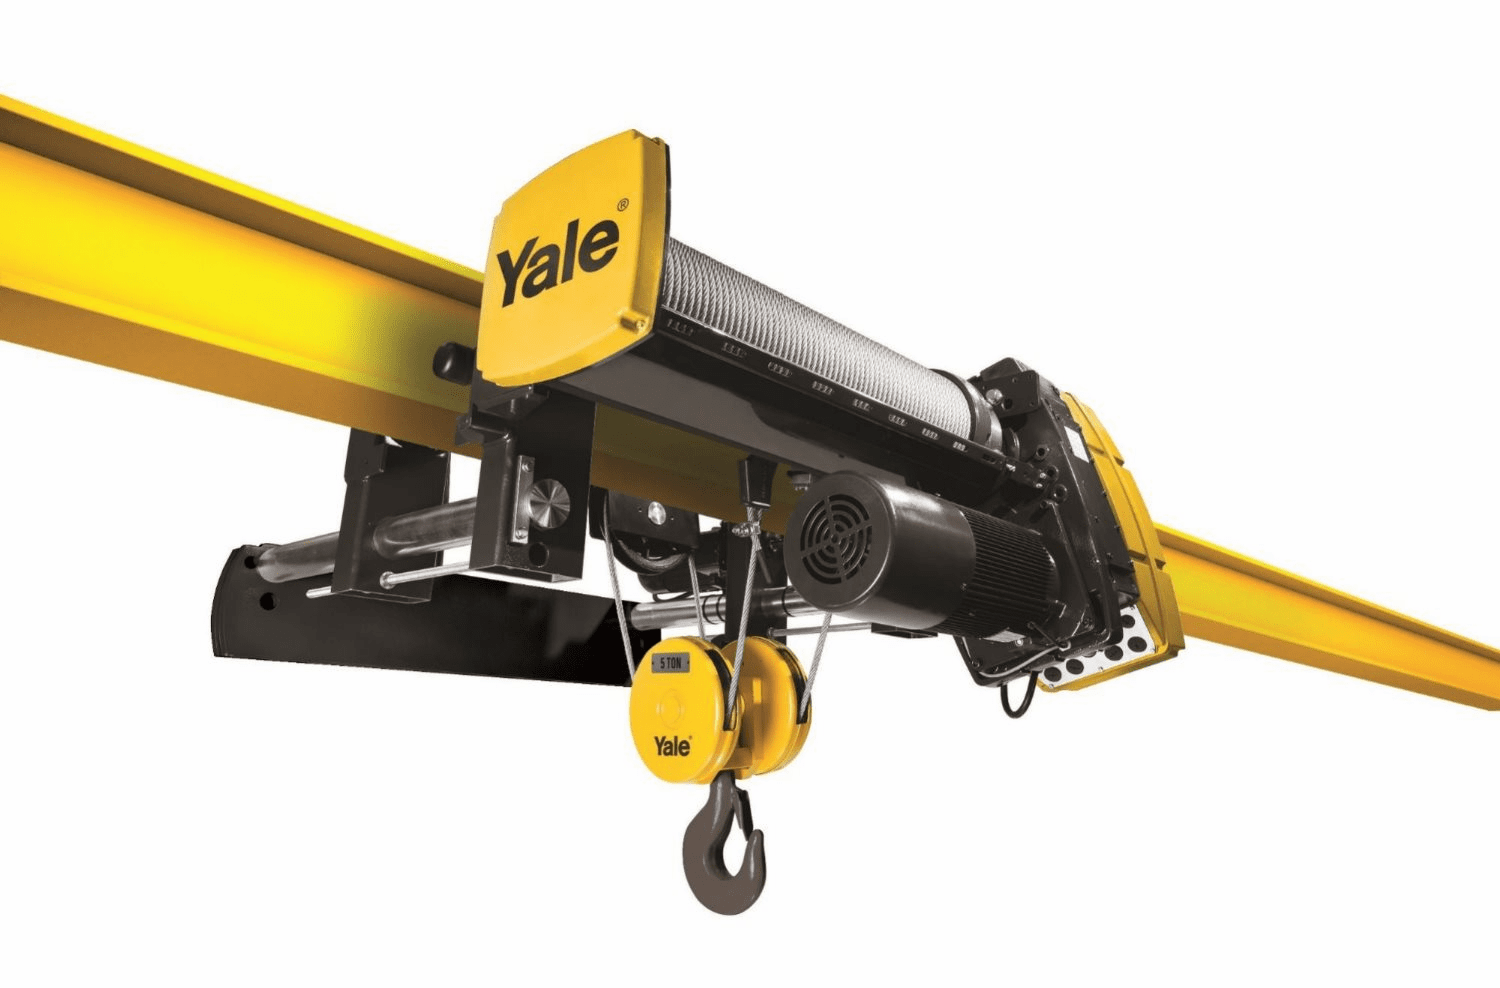 Yale 7.5 Ton YK, 4 part reeve monorail, 20/3.3fpm